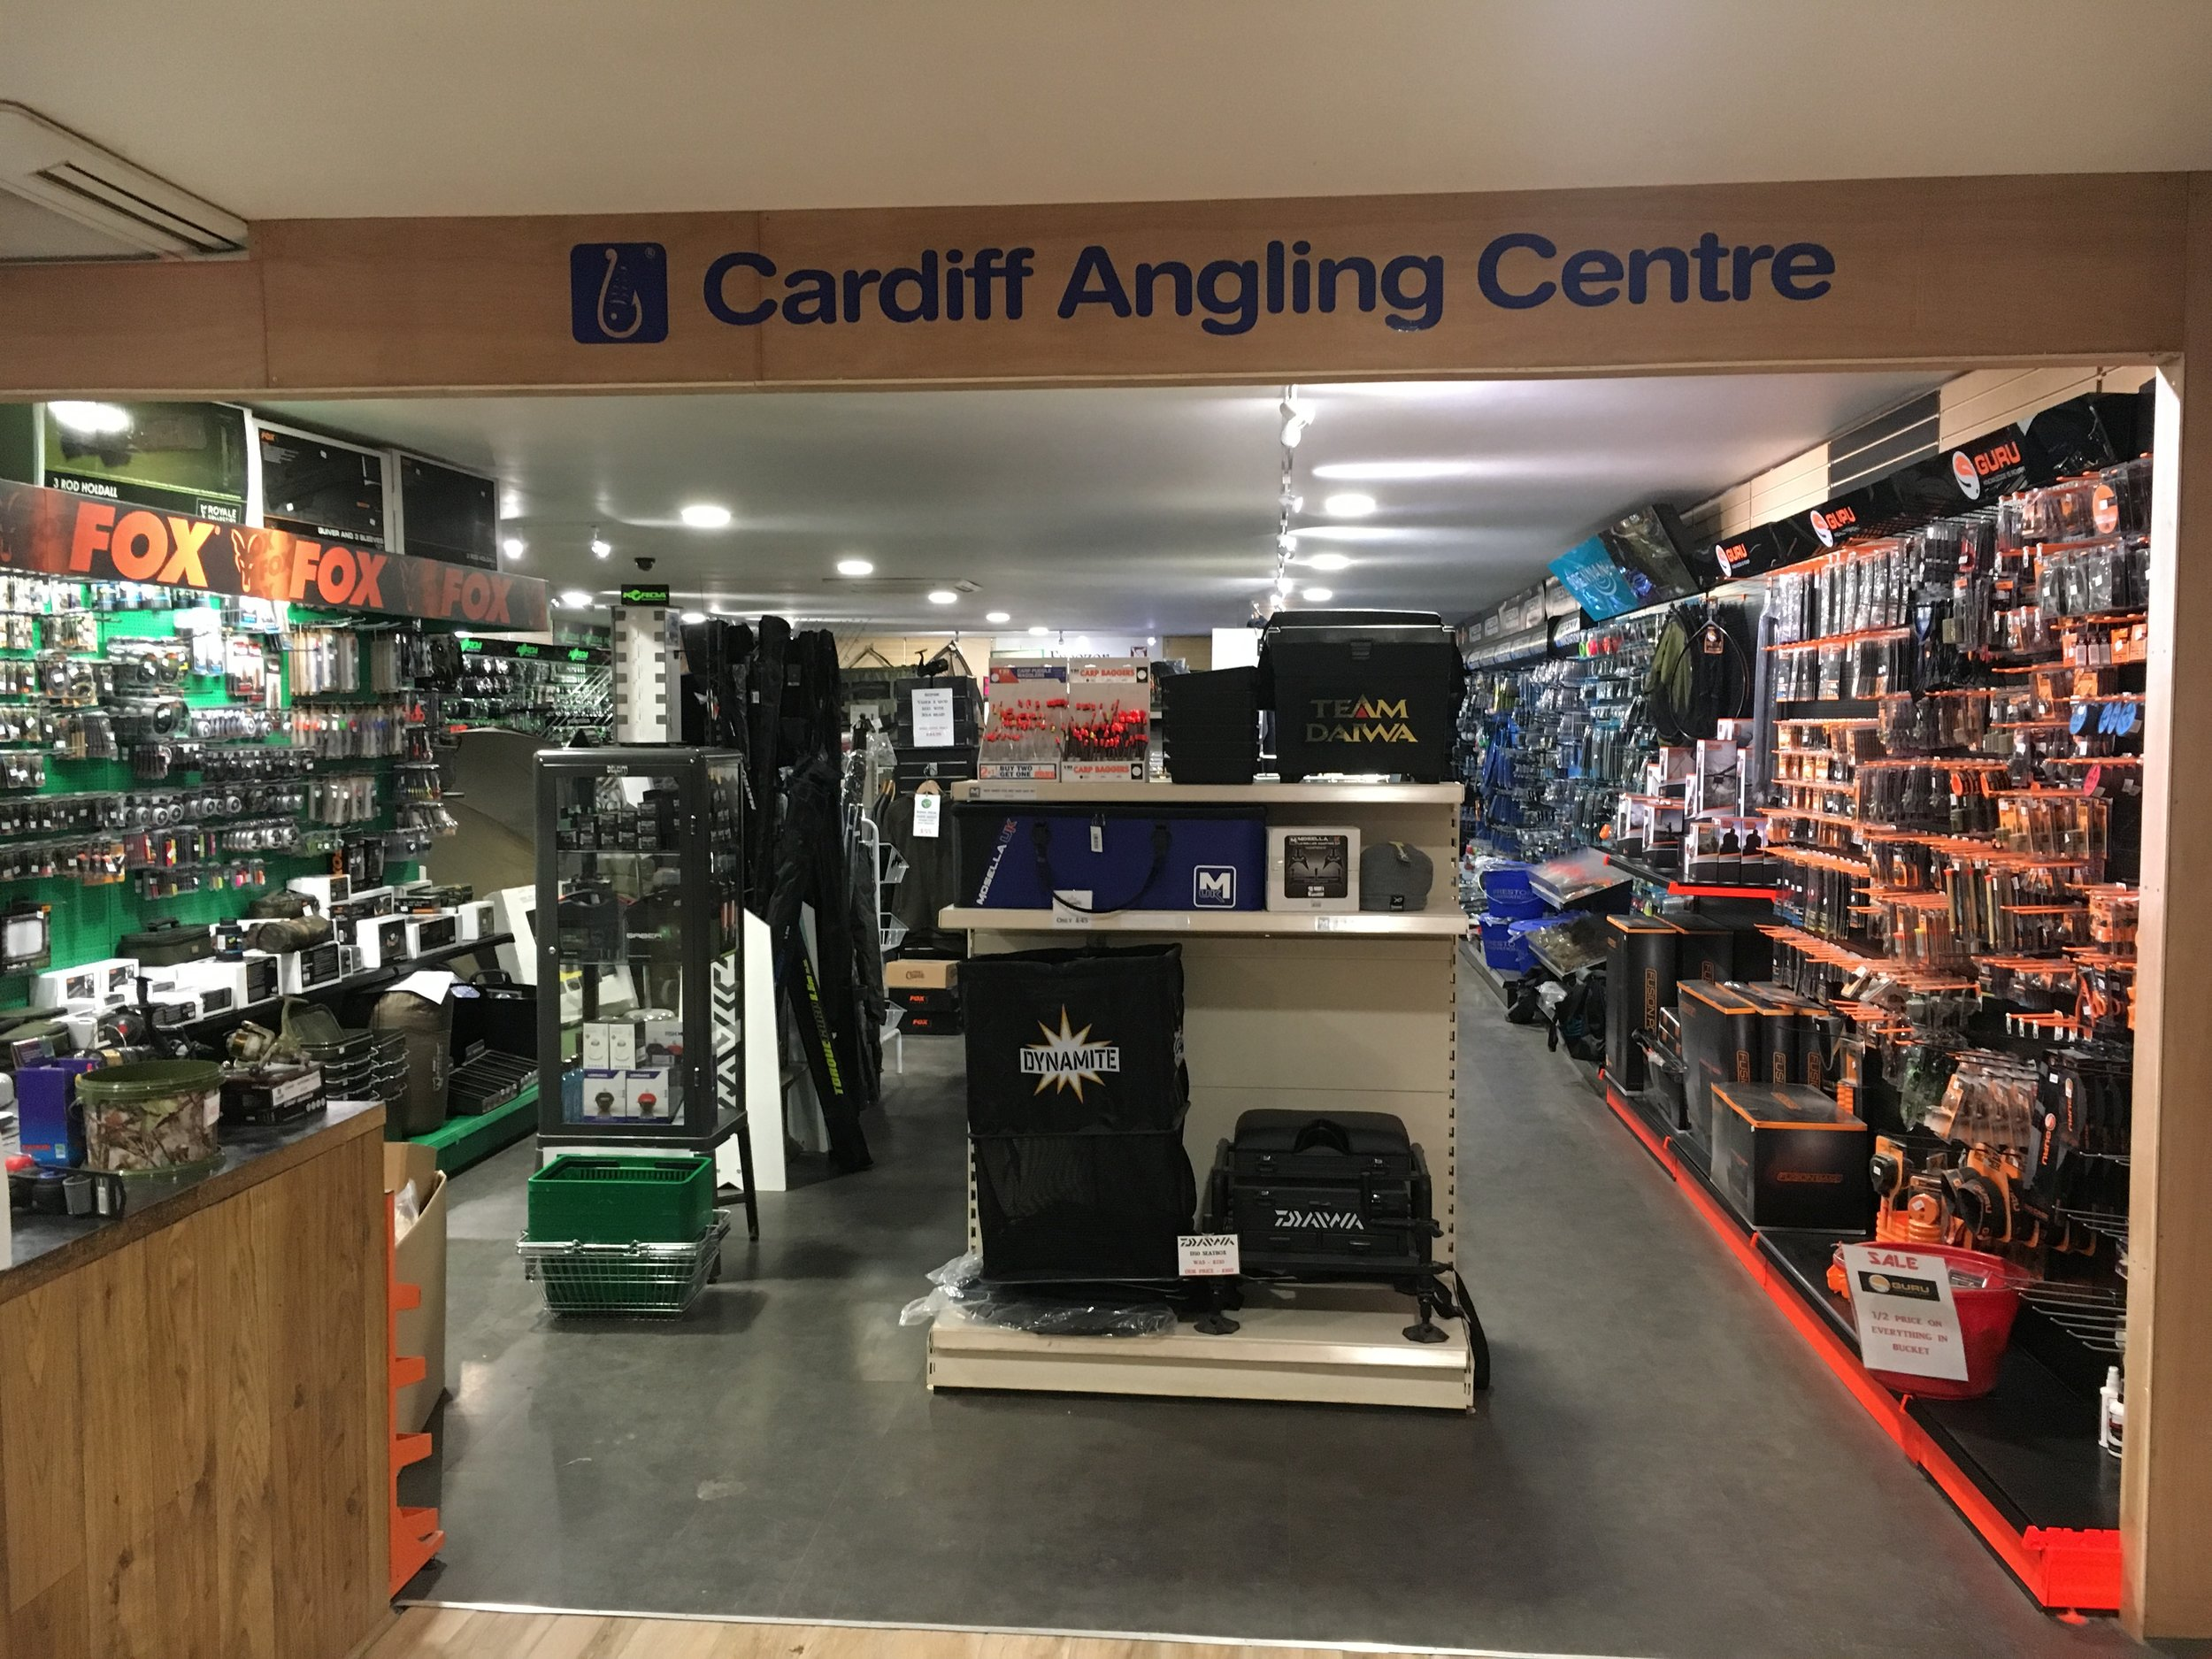 - Cardiff Angling Centre is our on site tackle shop that boast one of the best tackle stocks in South Wales. over 4500 square feet filled to the brim with Carp, Coarse tackle and bait.All top brands have a great showing instore  along with cheaper alternative offering something for everyoneAlso open 7 days a week from 7.30 in the morning